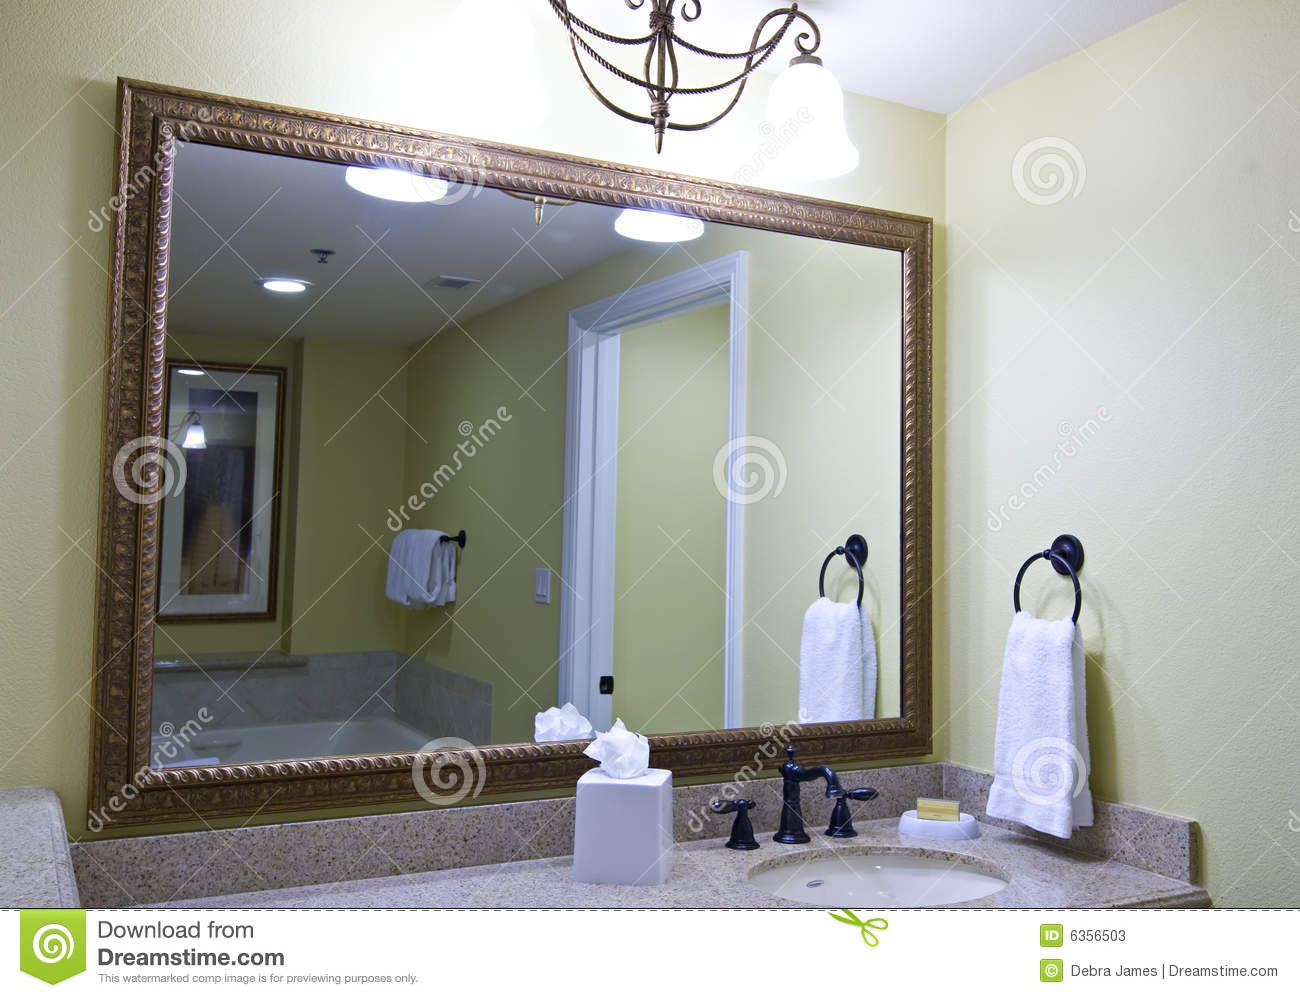 Mirror clipart cleaning bathroom Cleaning HQ Bathroom Clipart Picture